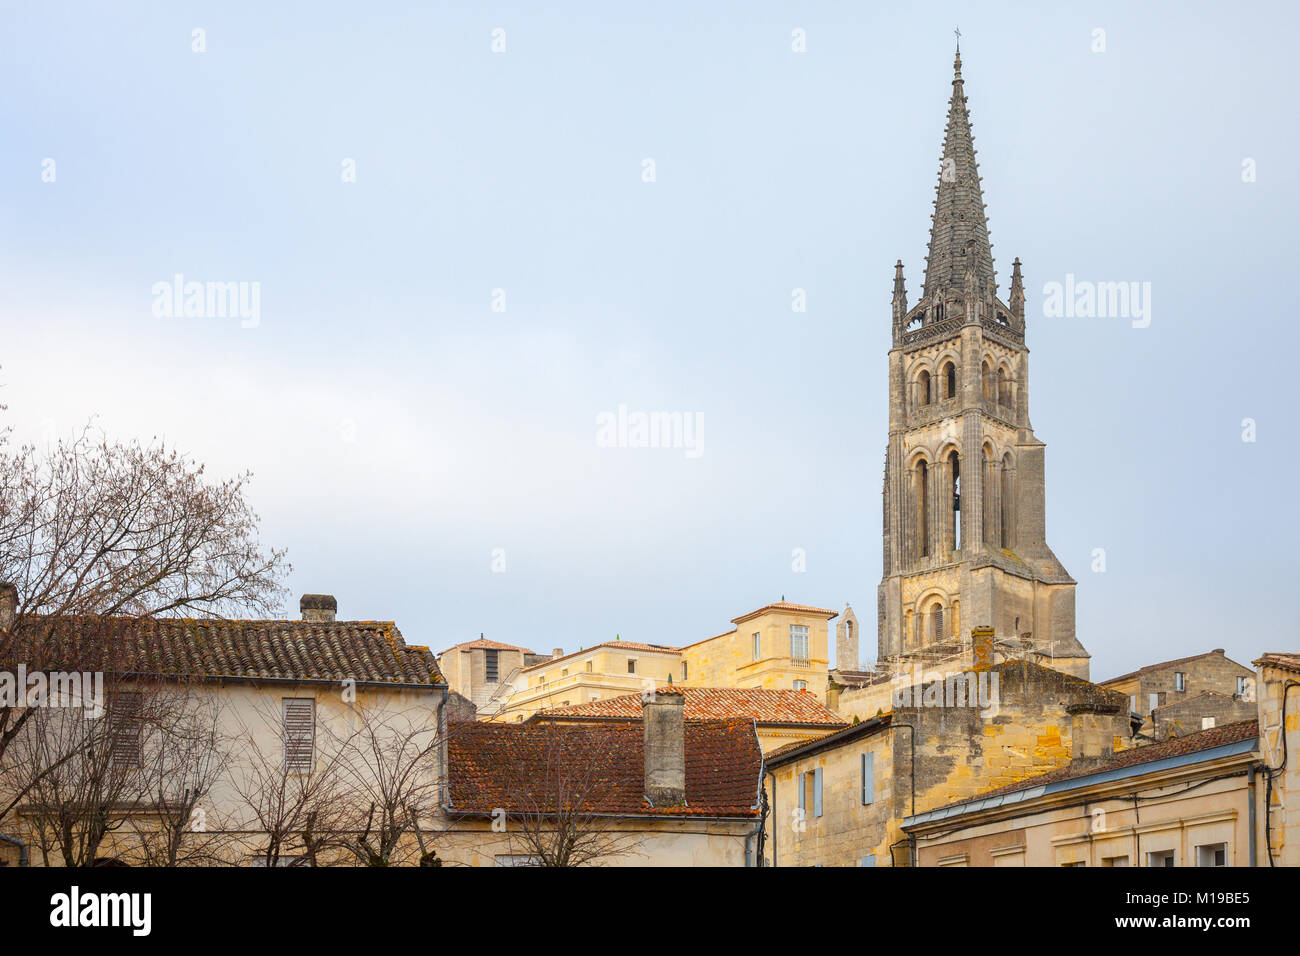 Collegial church (Eglise Collegiale) of Saint Emilion, France, taken during a sunny afternoon surrounded by the - Stock Image